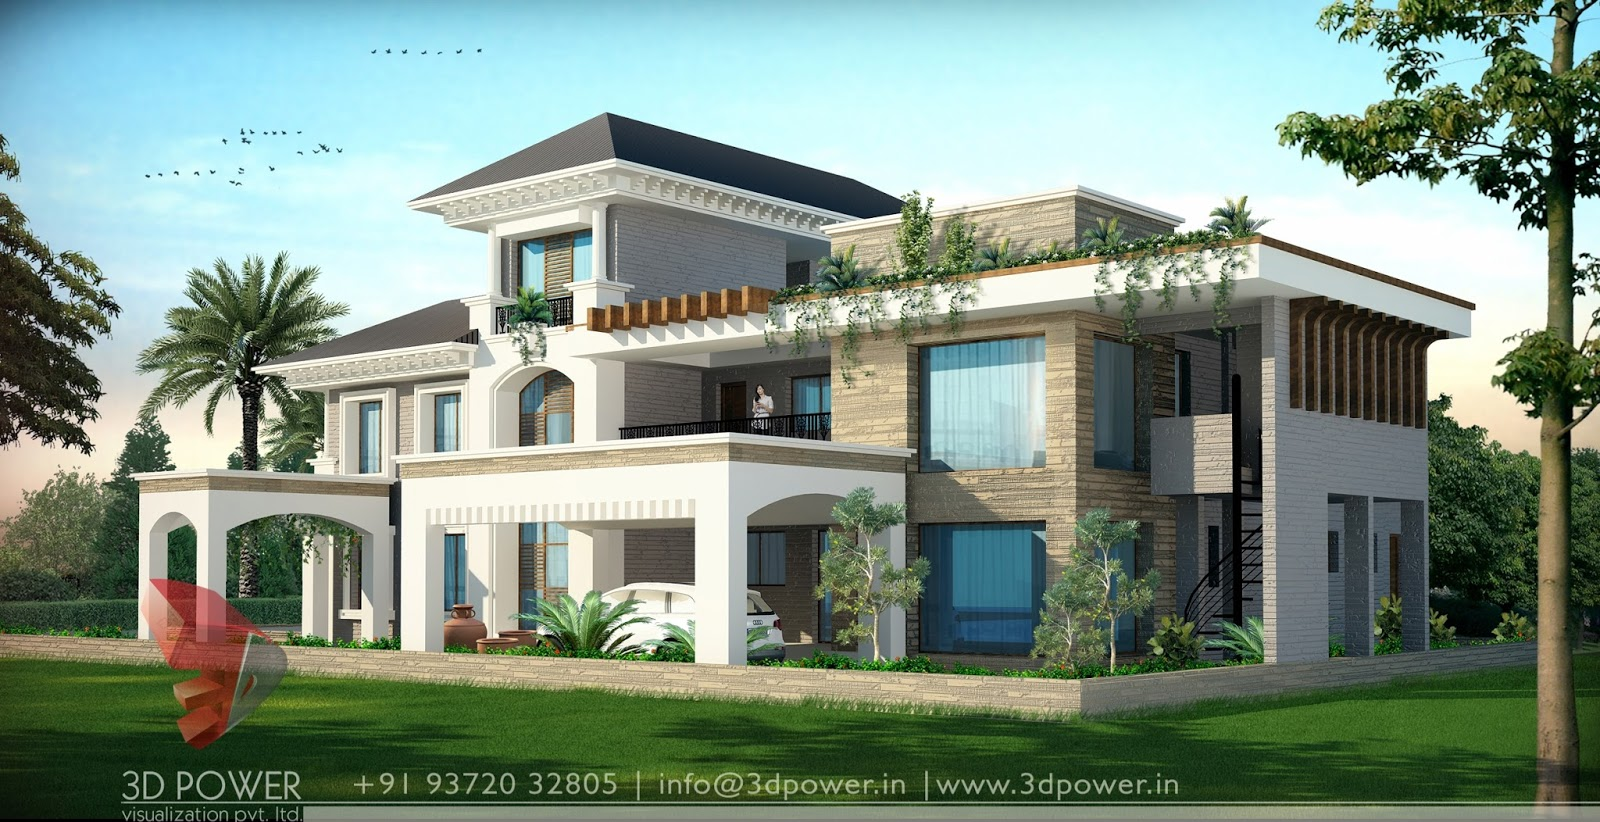 Ultra modern home designs home designs subtle is for Ultra modern bungalow designs